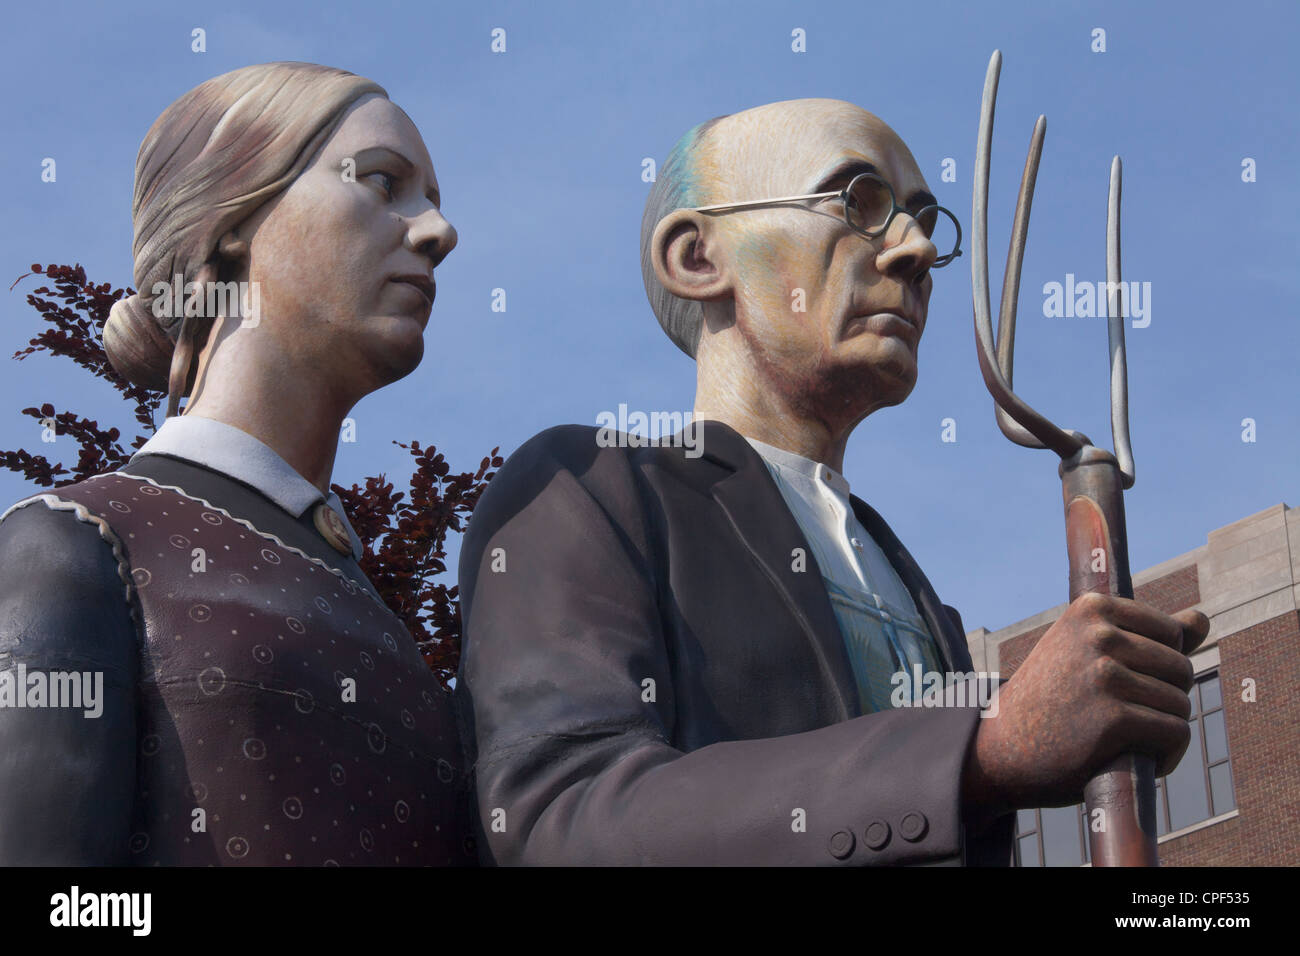 God Bless America sculpture by J Stewart Johnson after painting American Gothic by Grant Wood, Dubuque Art Museum, - Stock Image